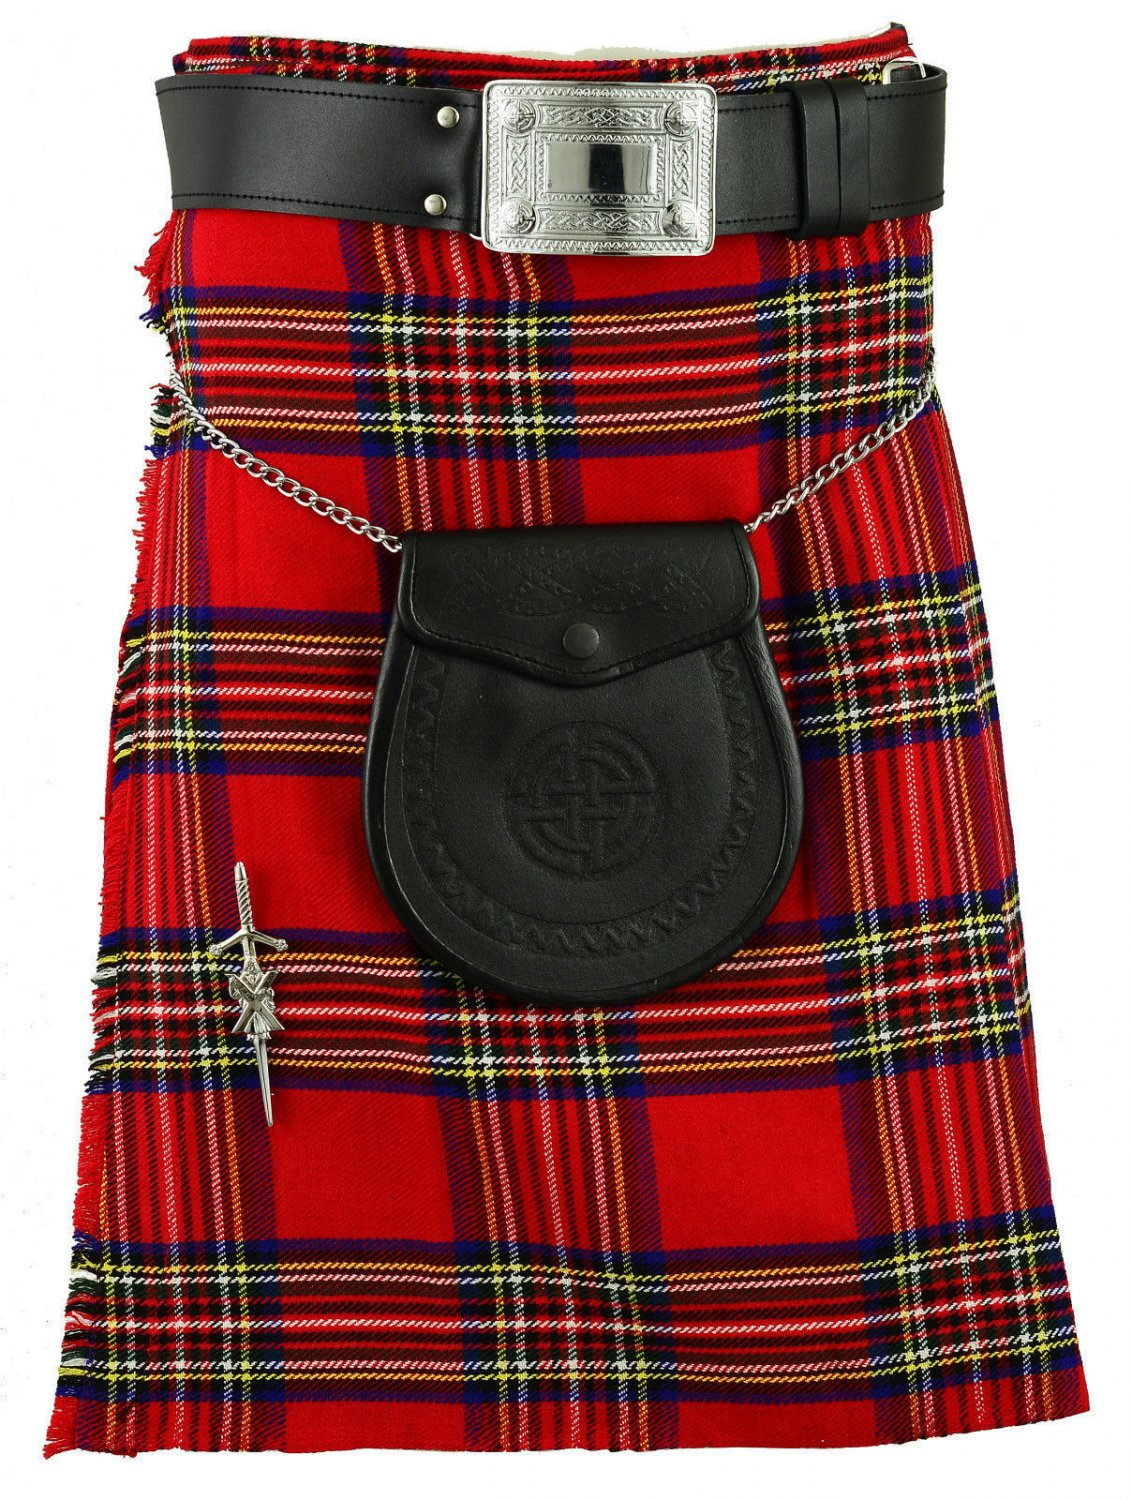 Traditional Royal Stewart Tartan Kilts Scottish Highland Utility Size 48 Sports Kilt for Men